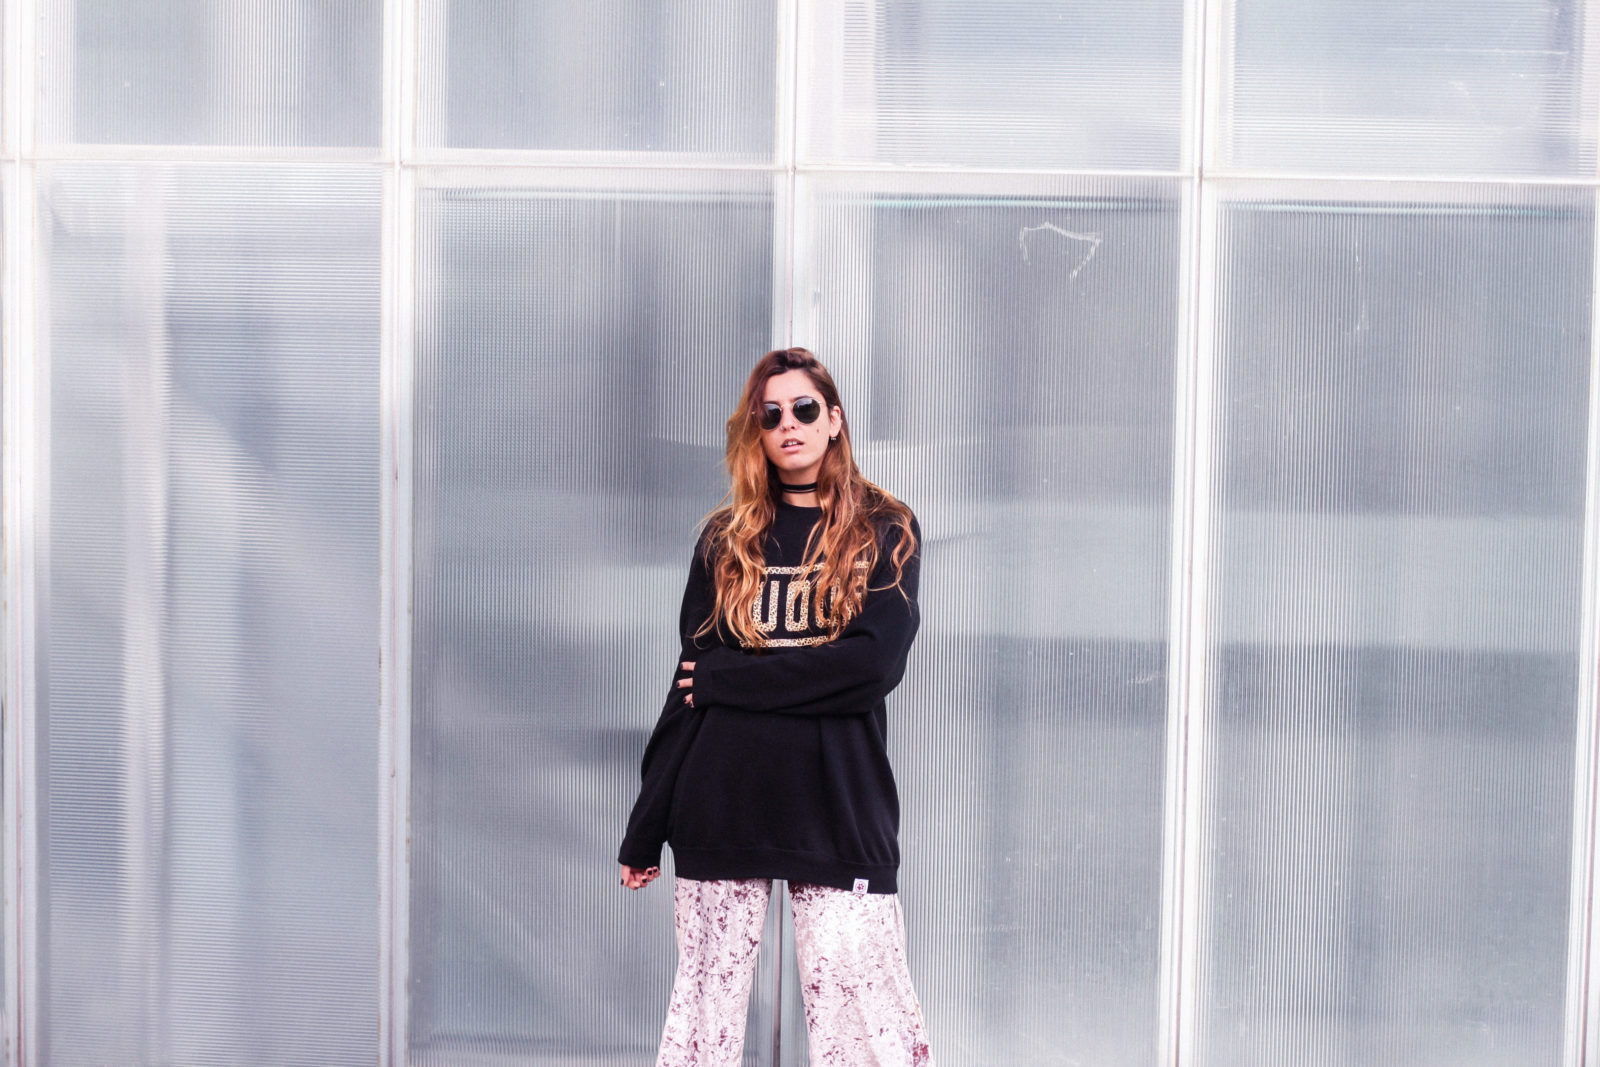 sudadera_woof_old_dogs_pantalones_terciopelo_rosa_botines_blancos_sweatshirt_oversize_choker_calcetines_rejilla_tendencias_2016_fall_trends_street_style_donkeycool-27